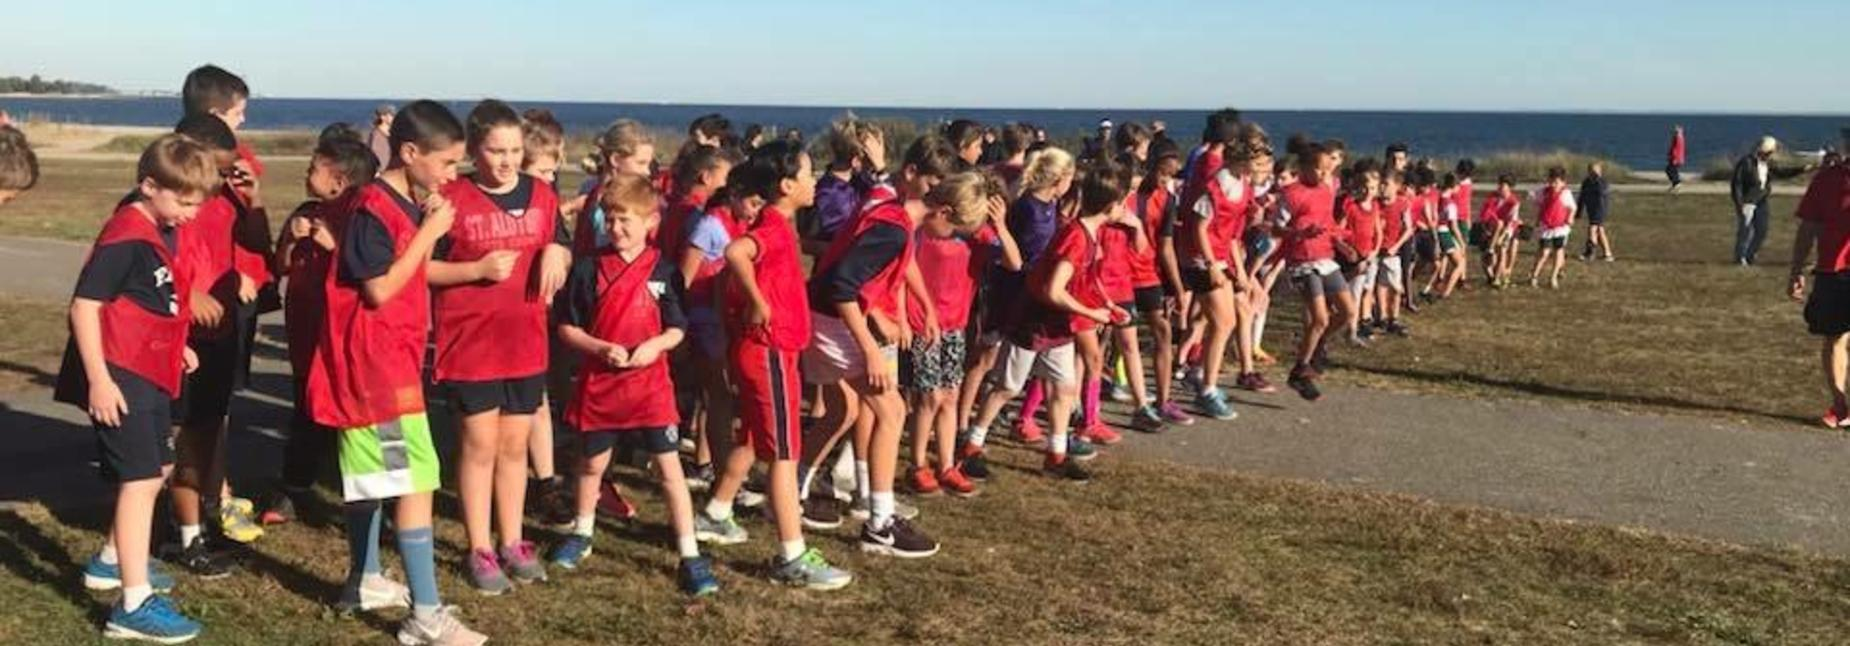 Competitive Best School Cross Country